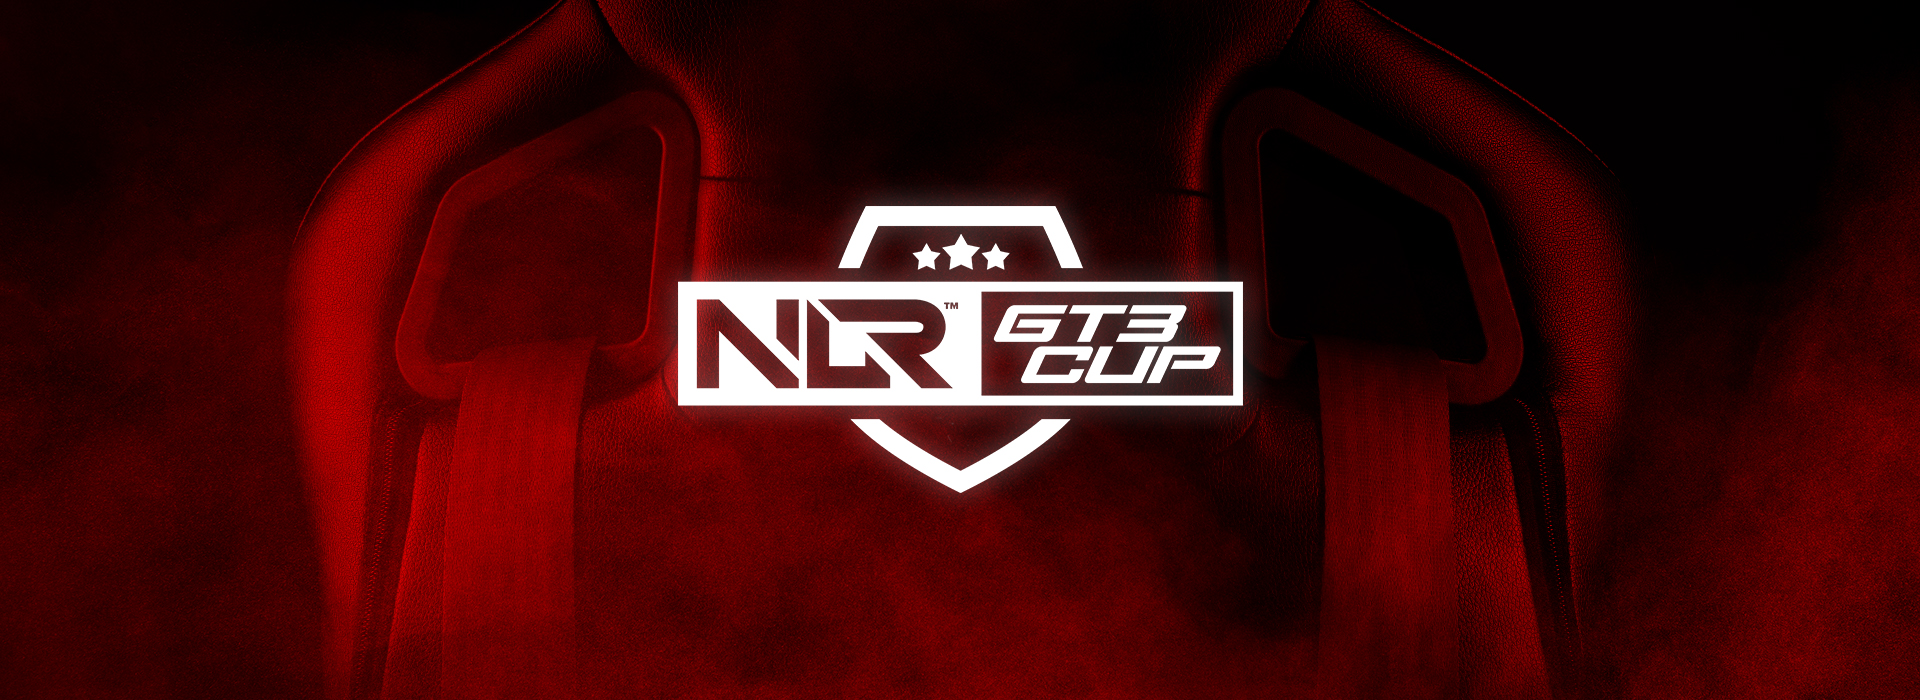 Nlr Cup Blog